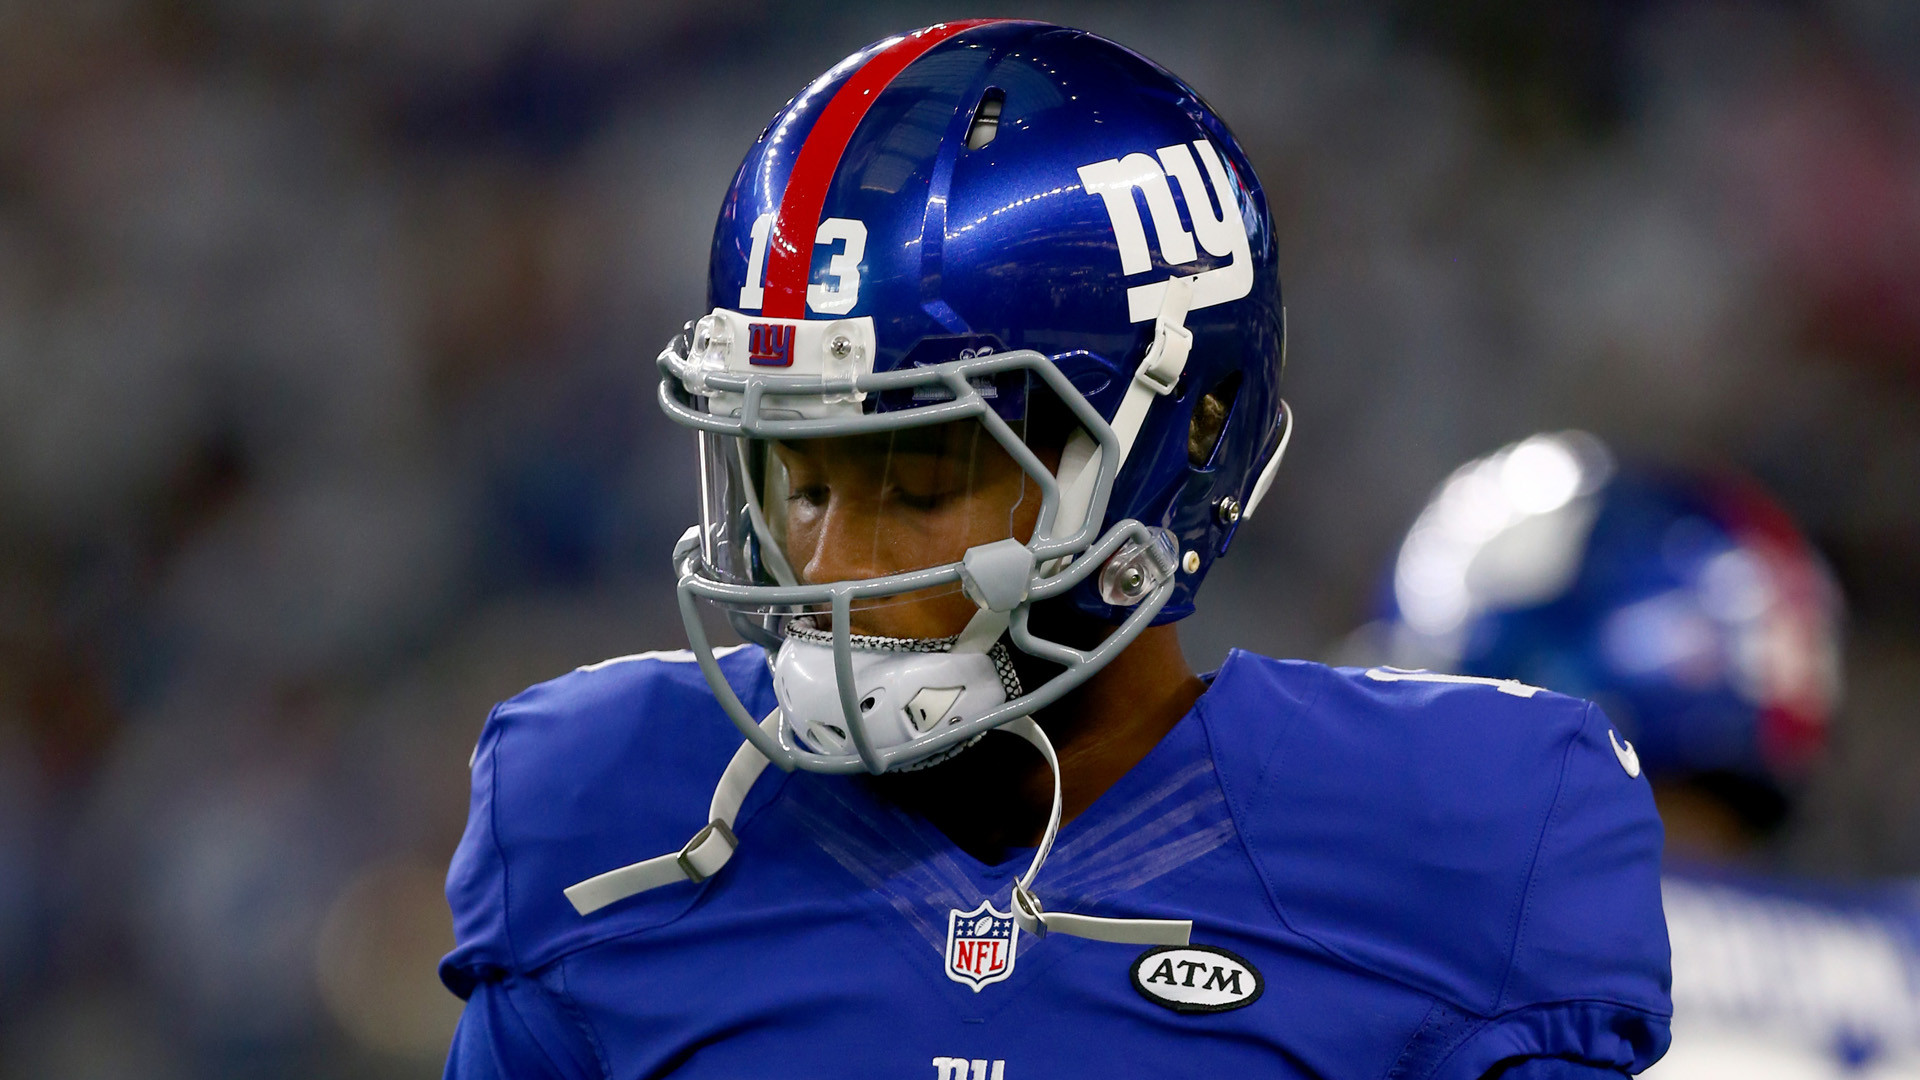 Odell Beckham Jr got off the mark for the Giants in the new season with this